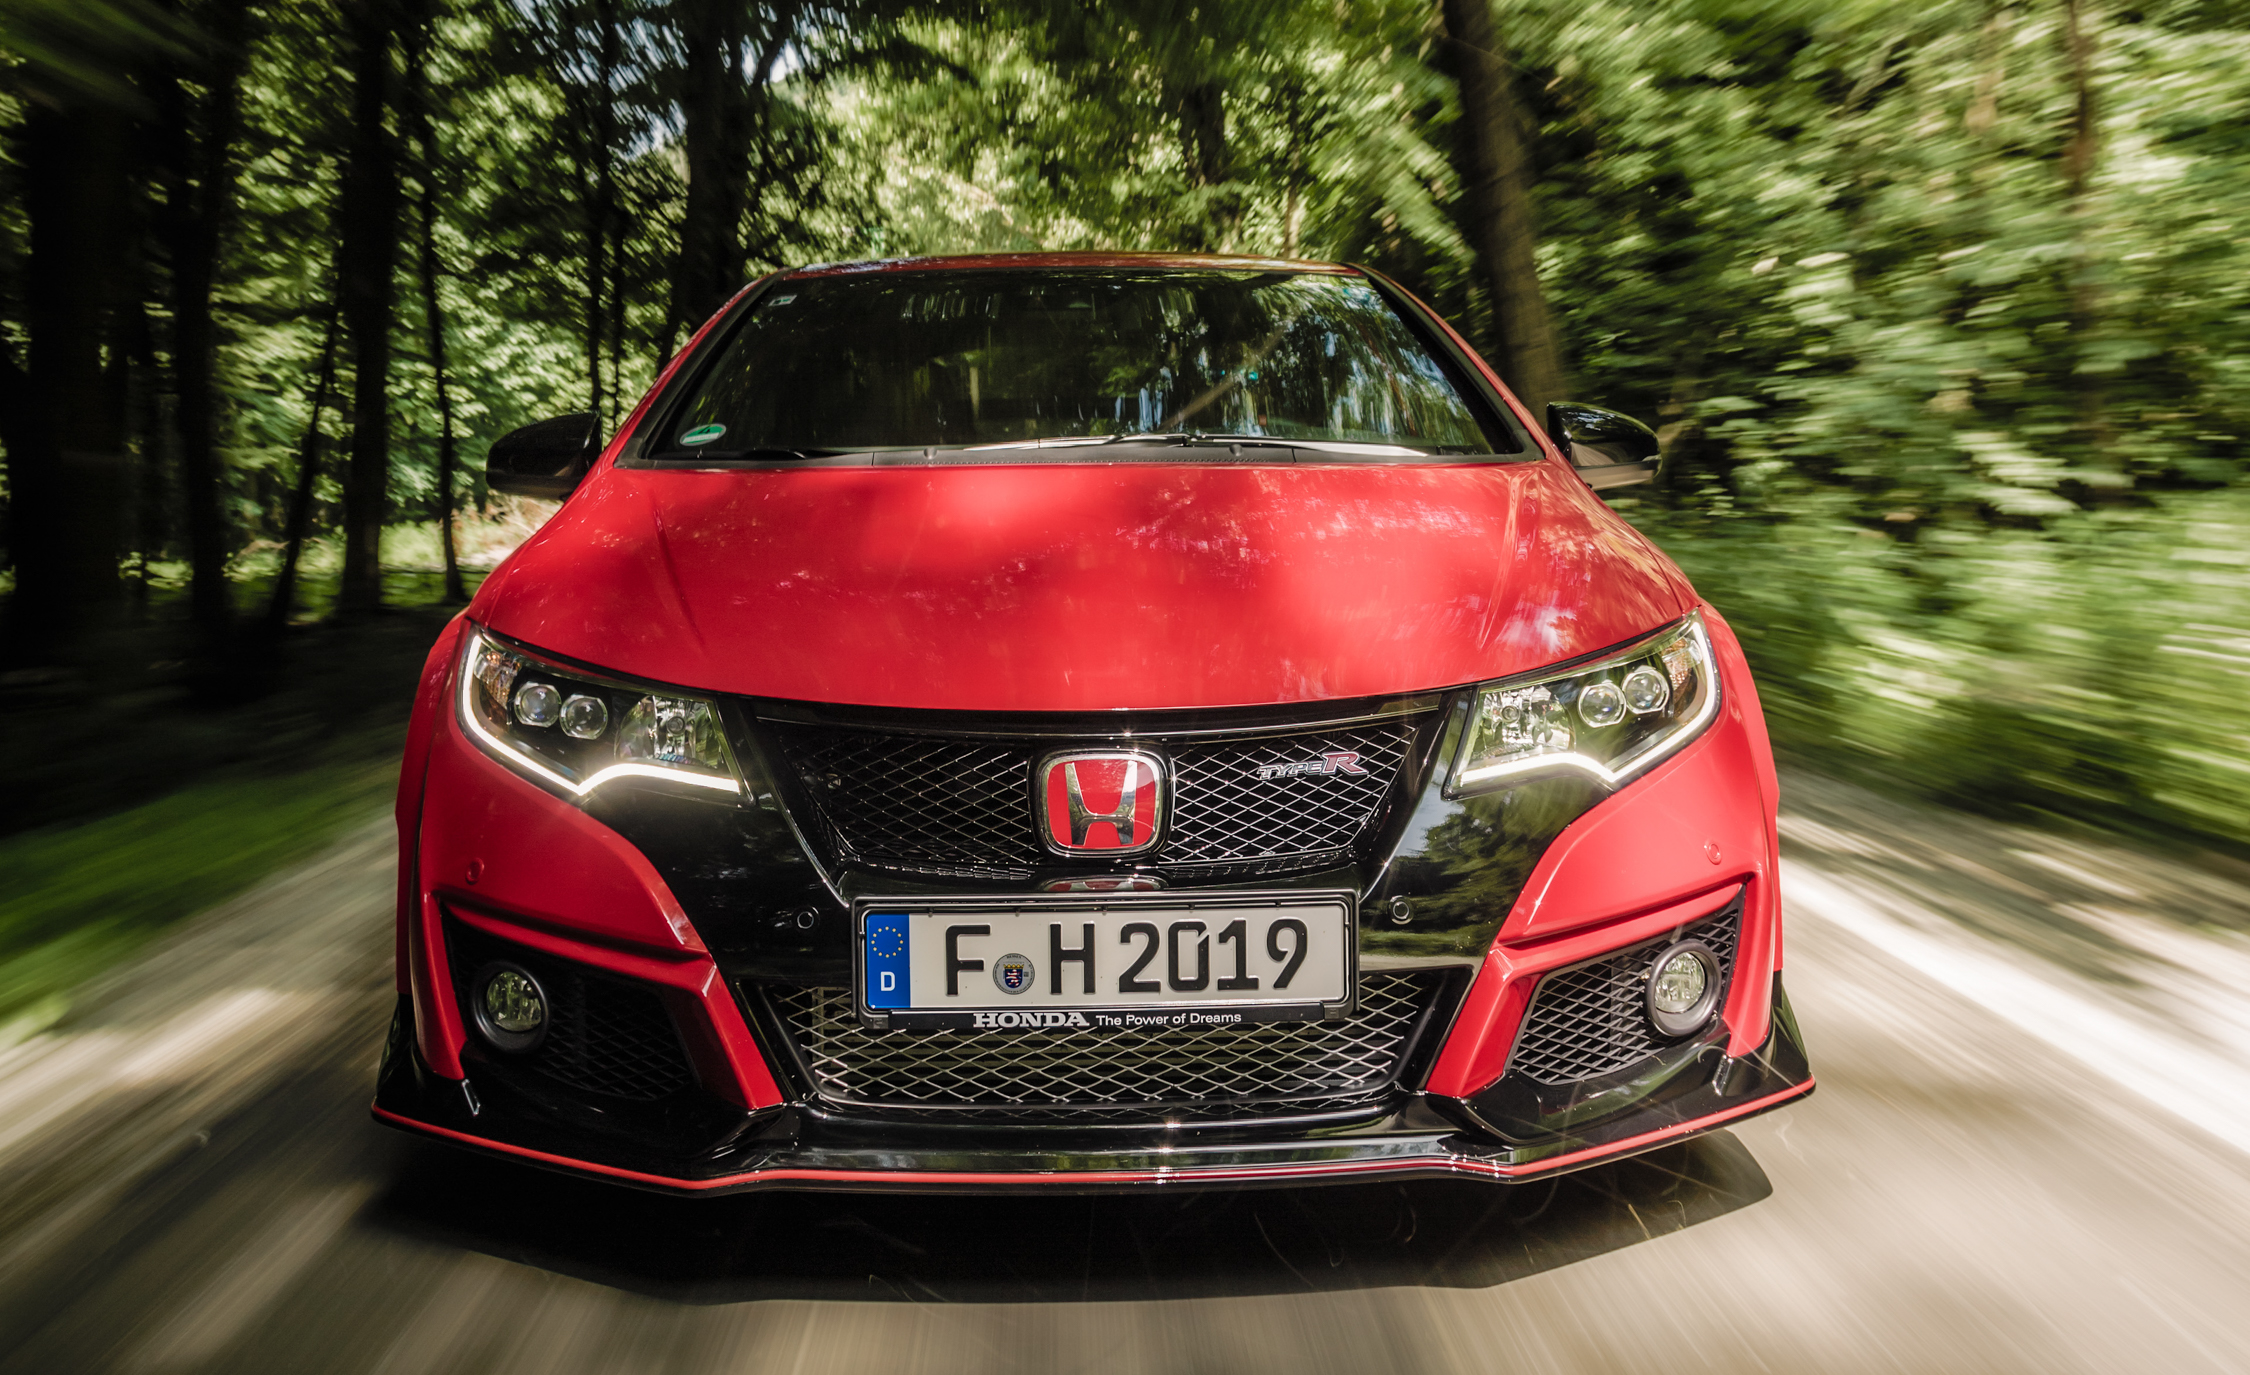 2015 Honda Civic Type R Exterior Grille and Bumper